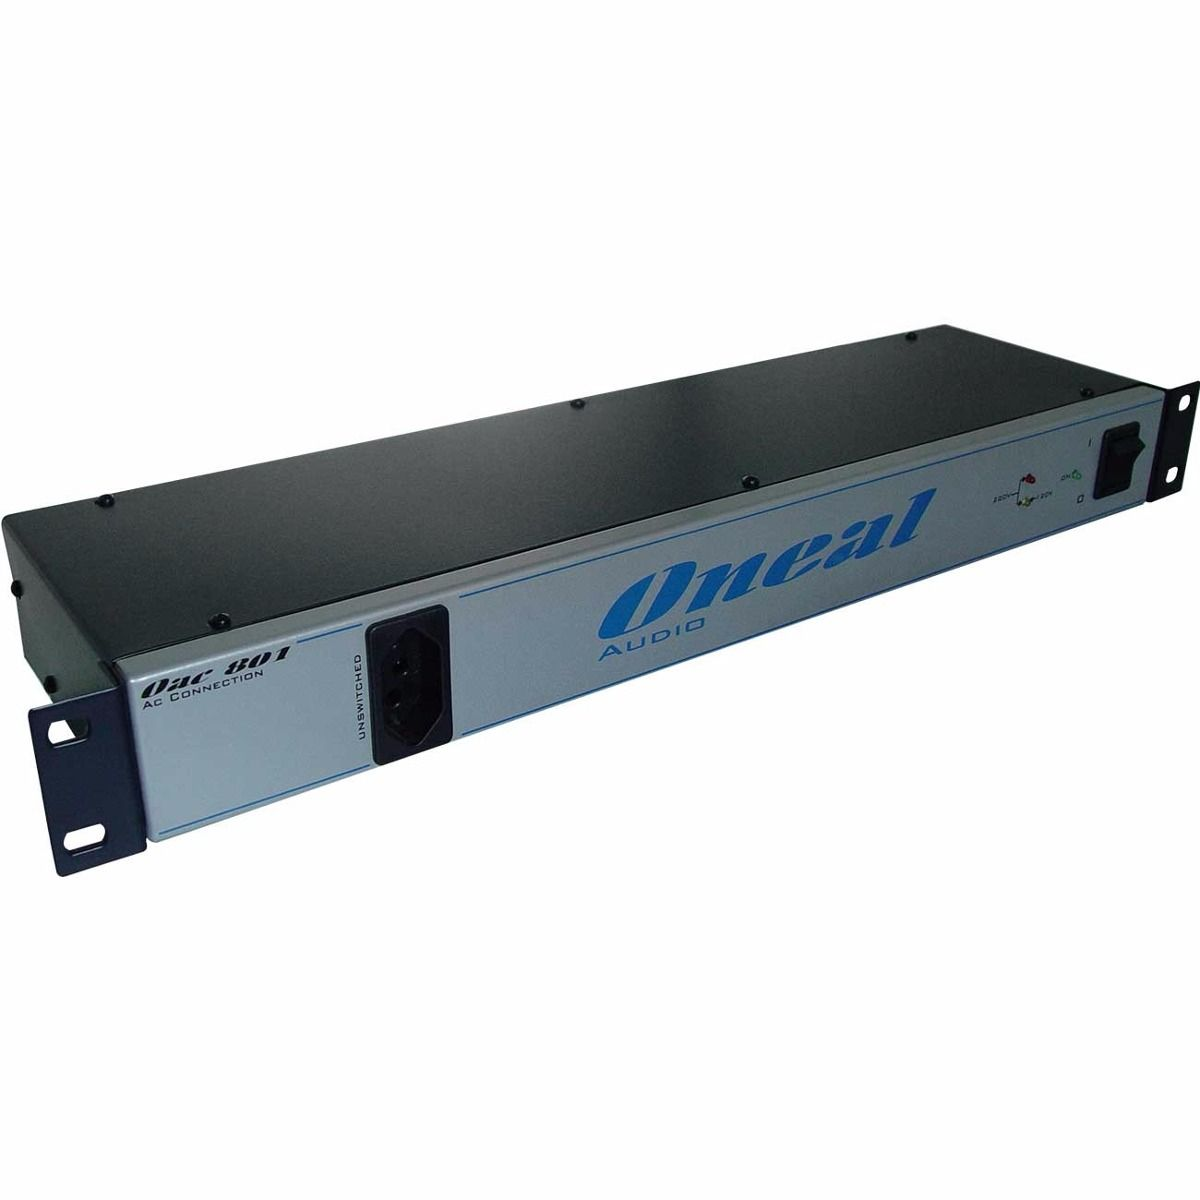 Painel Energia Oneal Oac801 8 Tomadas + 1 Frontal